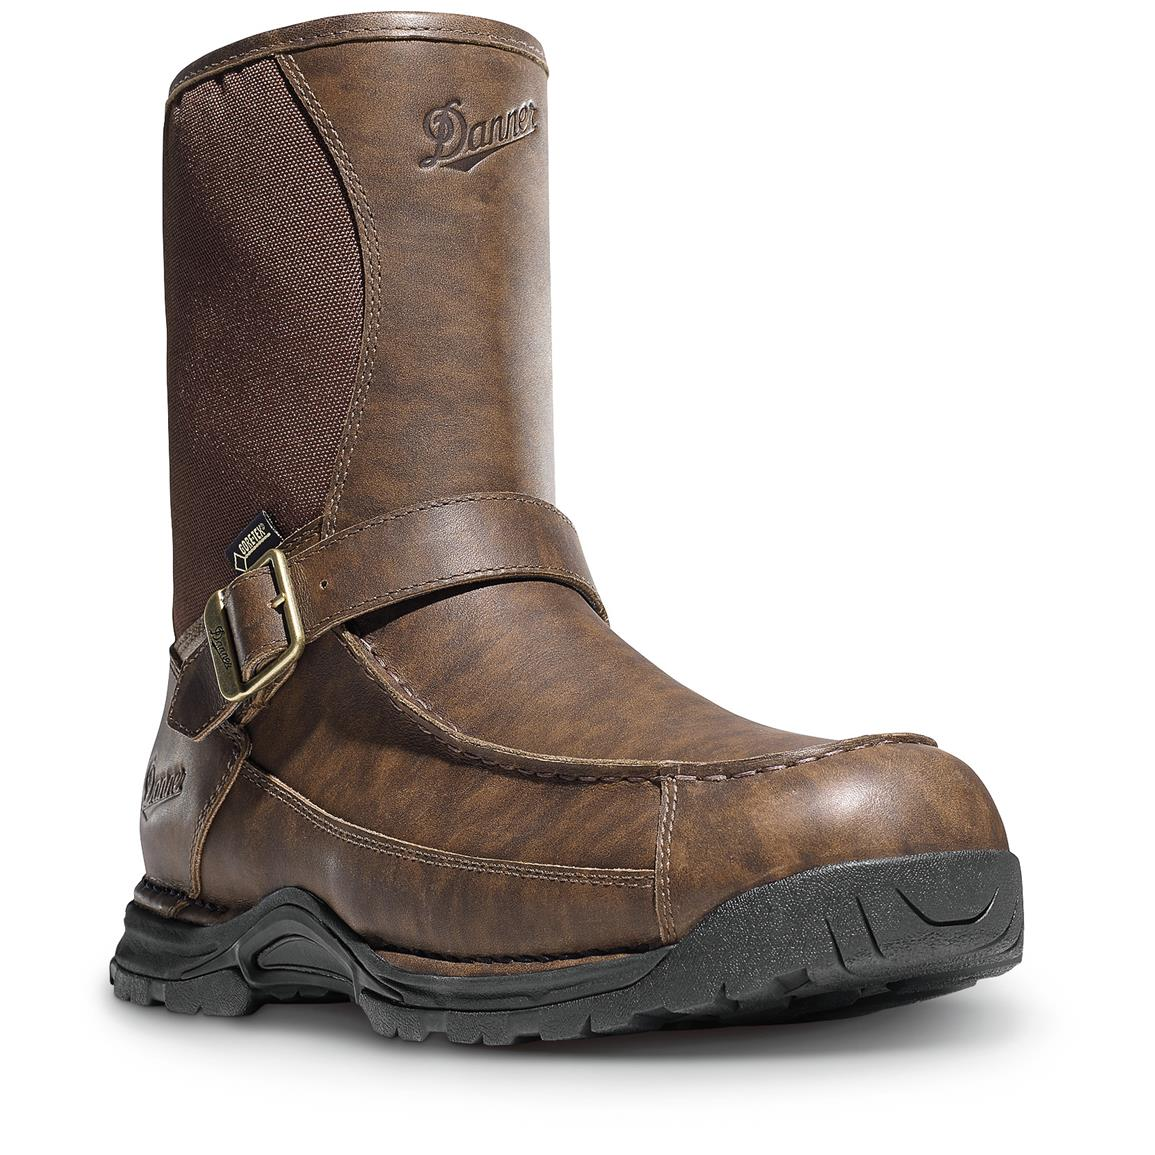 "Danner Men's Sharptail 10"" Rear Zip Waterproof Hunting Boots"